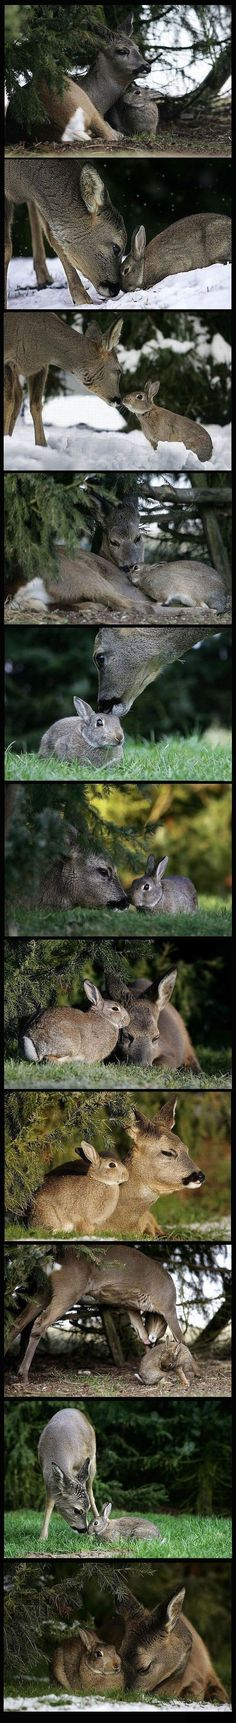 Bunny and deer